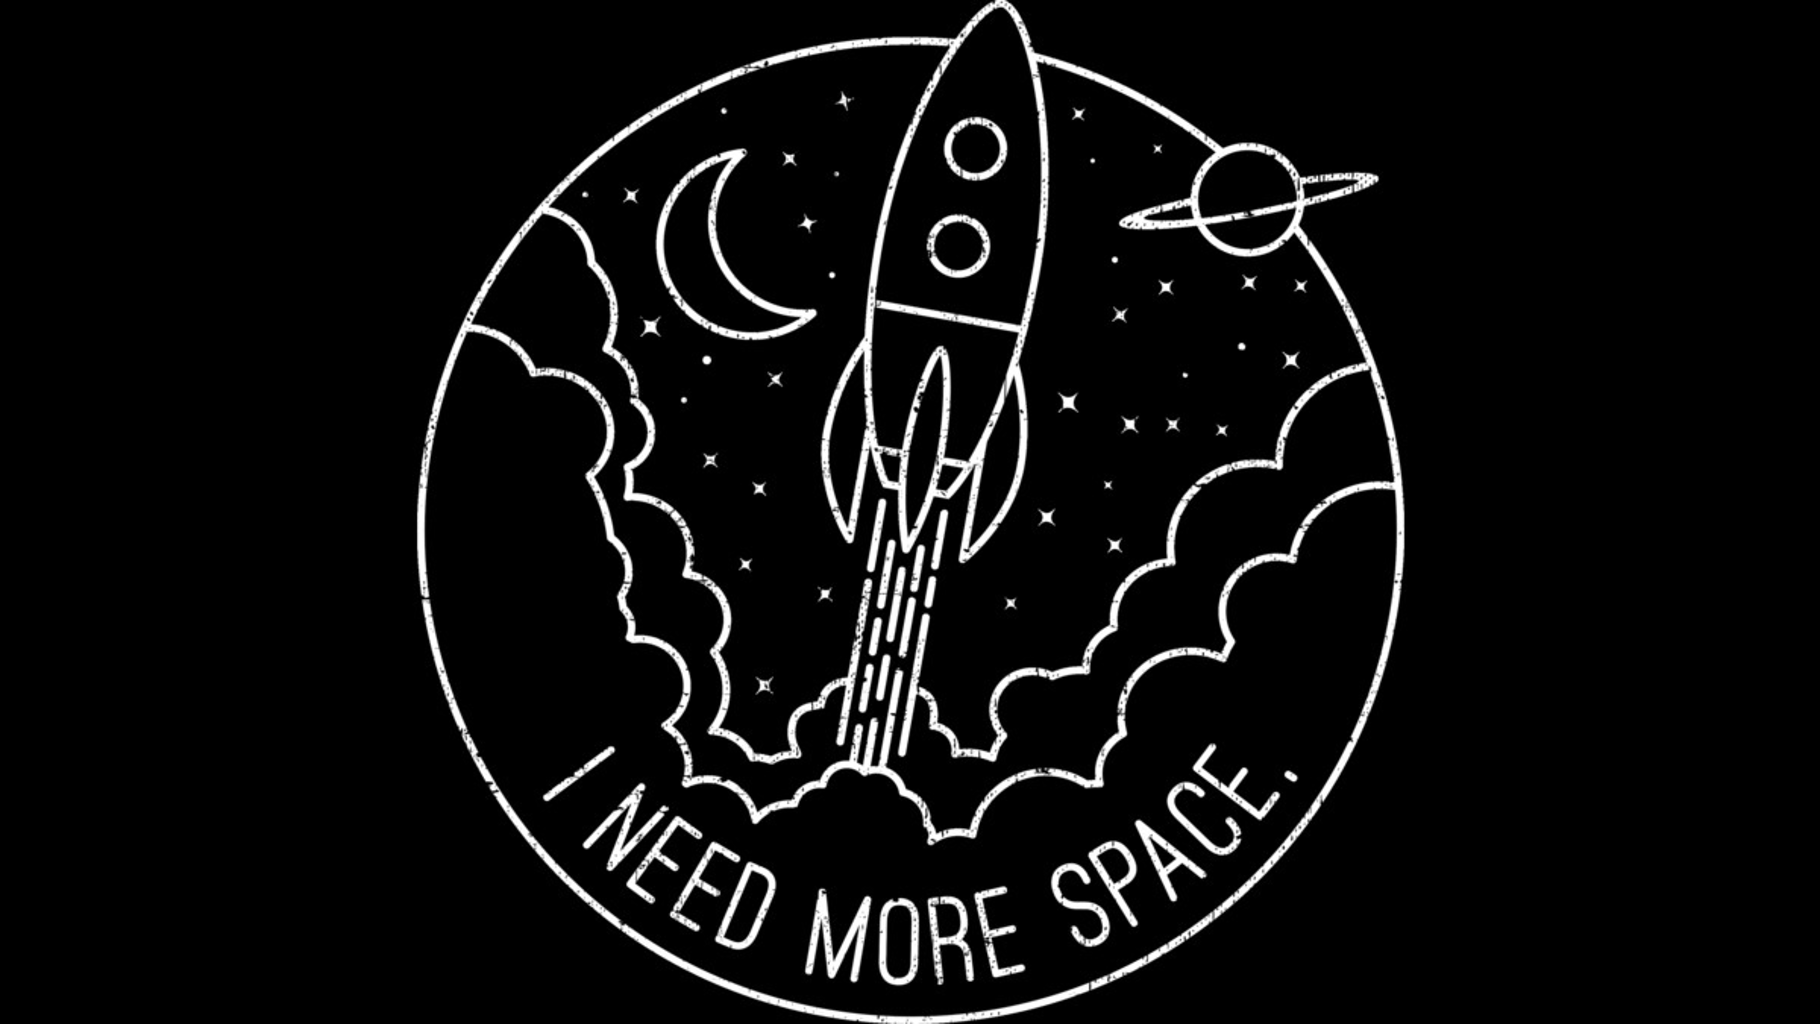 Design by Humans: I need more space